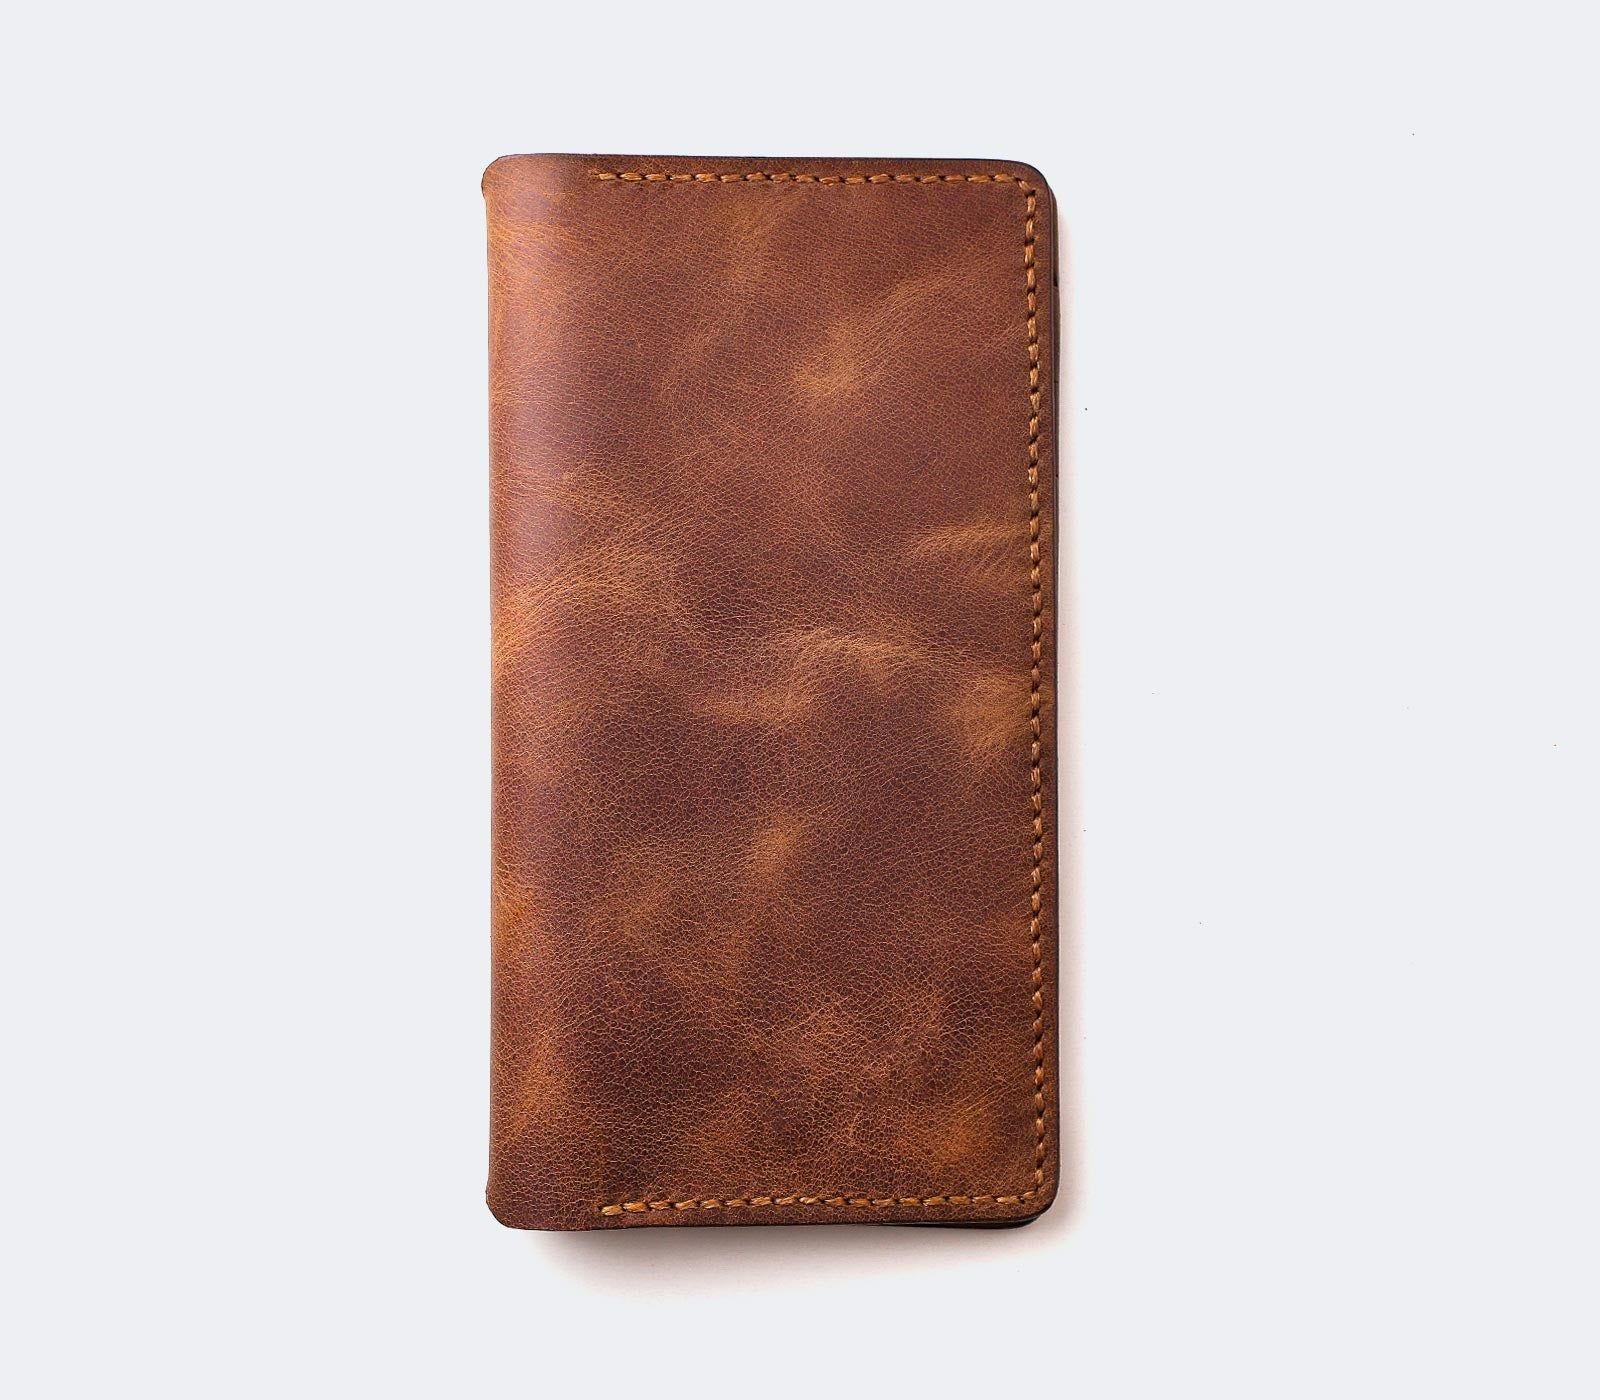 iPhone Leather Wallet Case - Tripolis